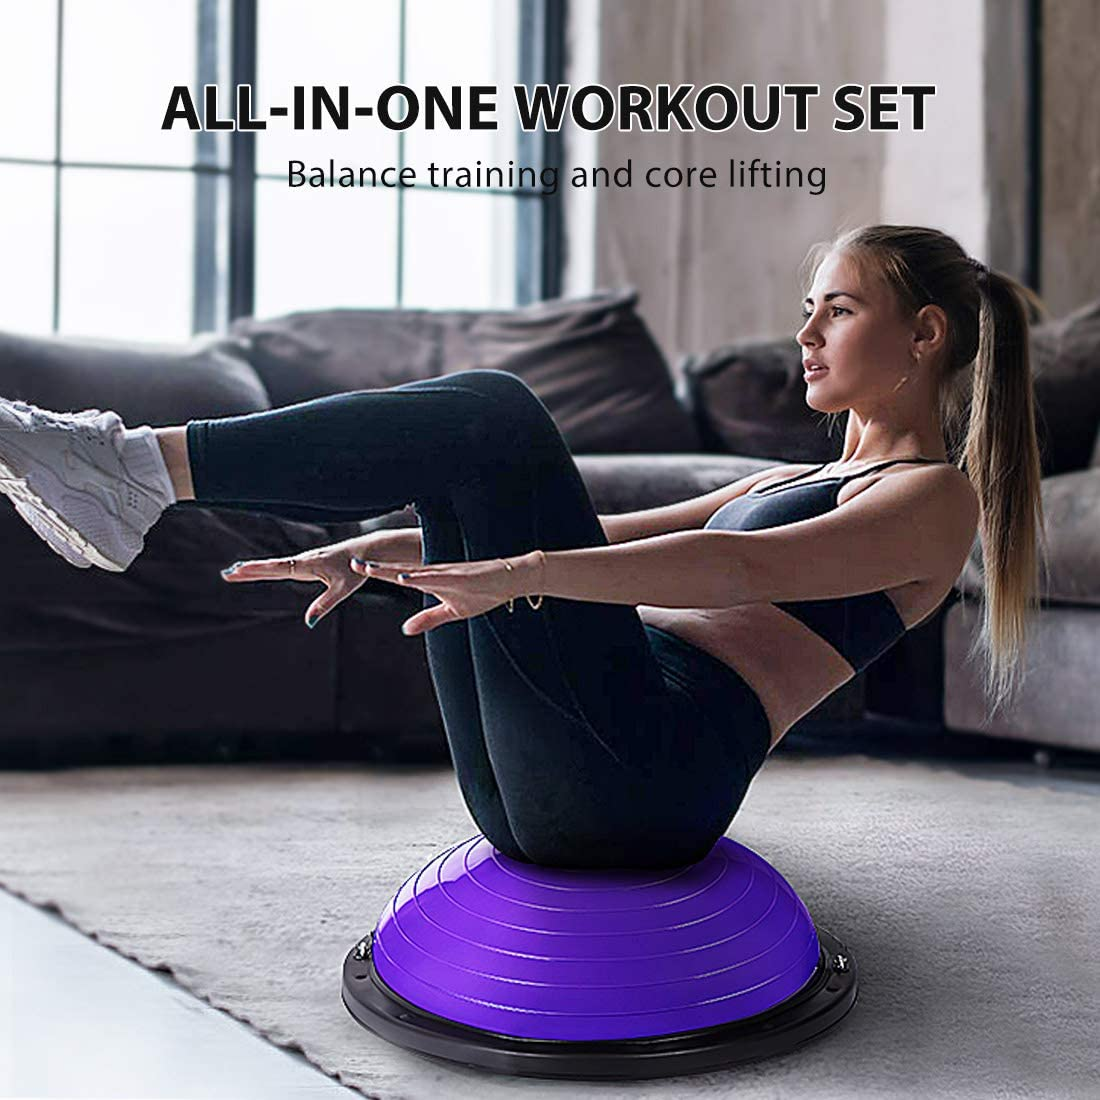 VIVOHOME 58cm Anti Slip Half Balance Ball Trainer Yoga Exercise Ball with Resistance Bands Bonus Foot Pump for Yoga Fitness Strength Exercise Home Gym Supports up to 770LBS Core Training